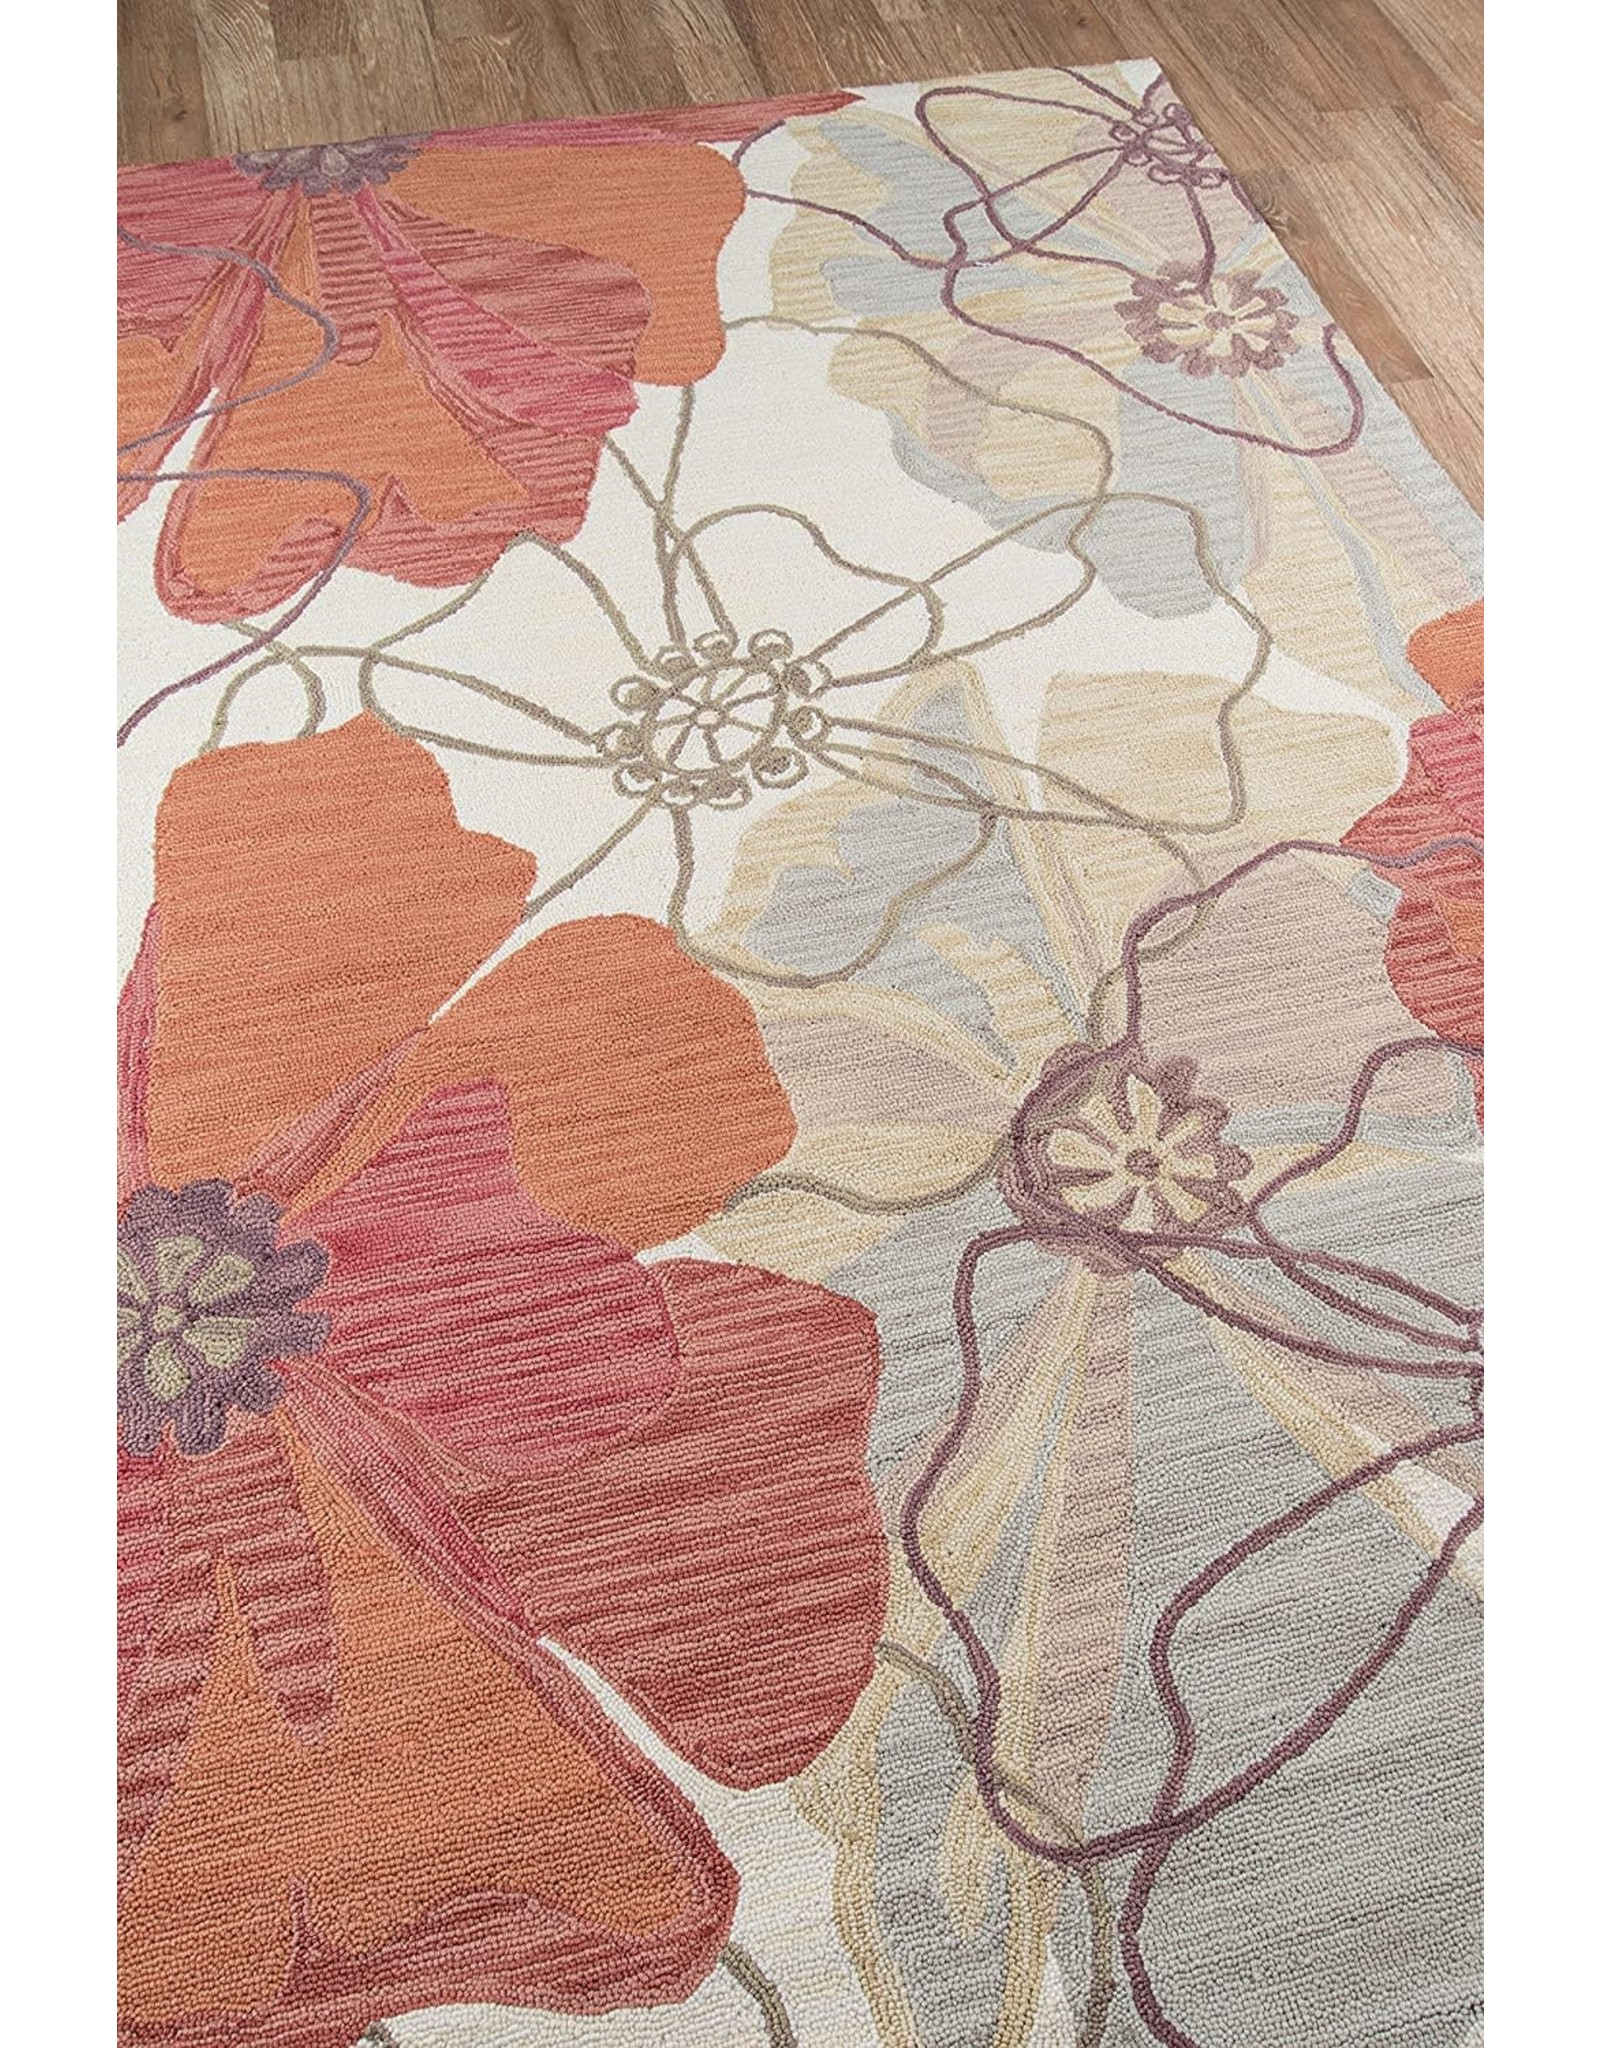 Momeni Rugs Momeni Rugs Summit Collection, Hand Knotted Transitional Area Rug, 8' x 10', Sand